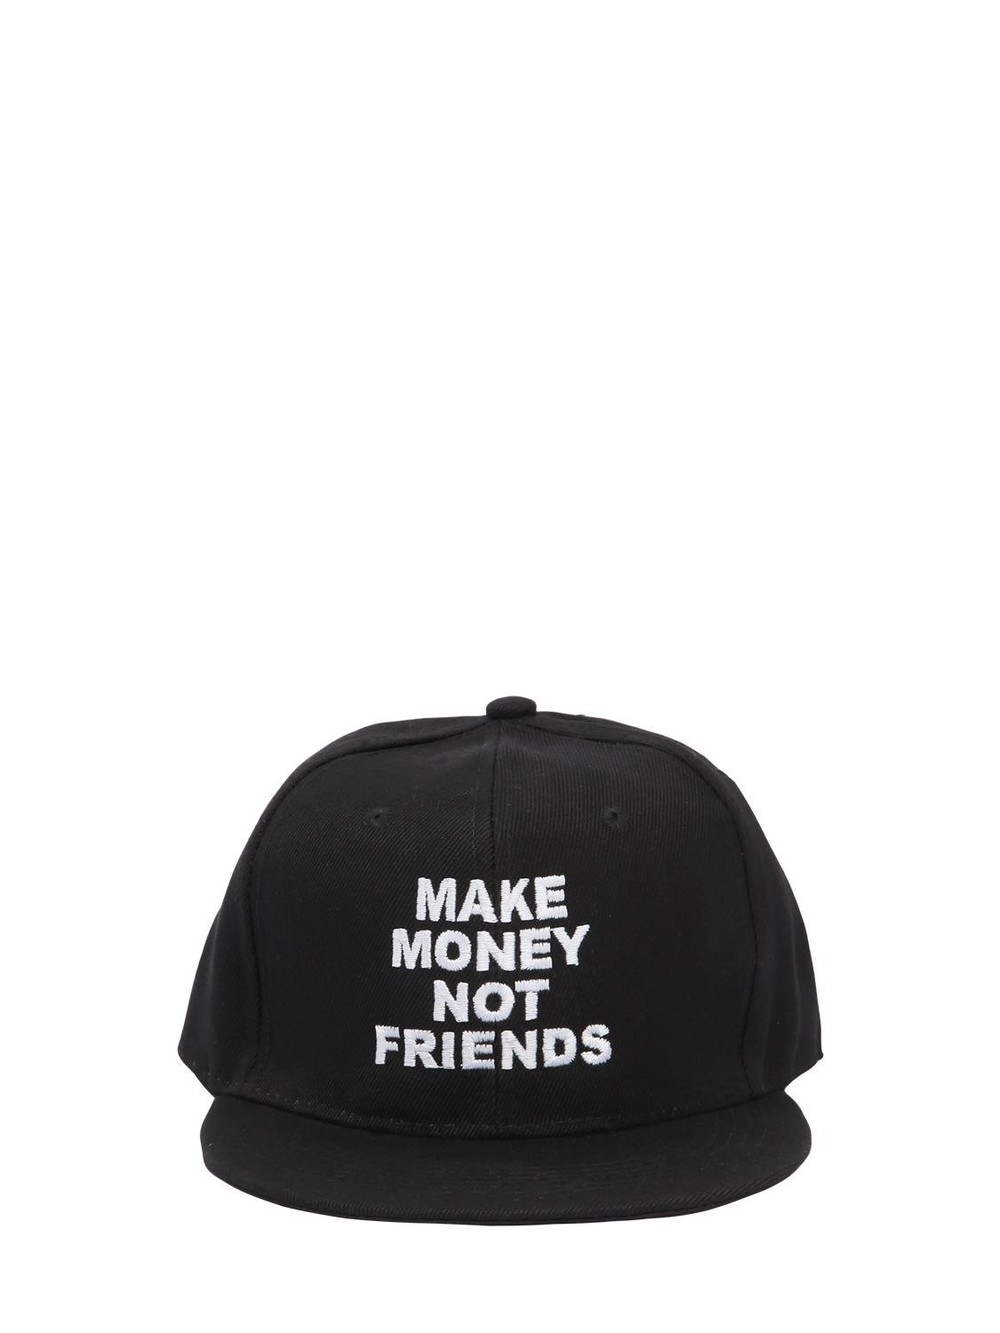 MAKE MONEY NOT FRIENDS Logo Embroidered Baseball Hat in black